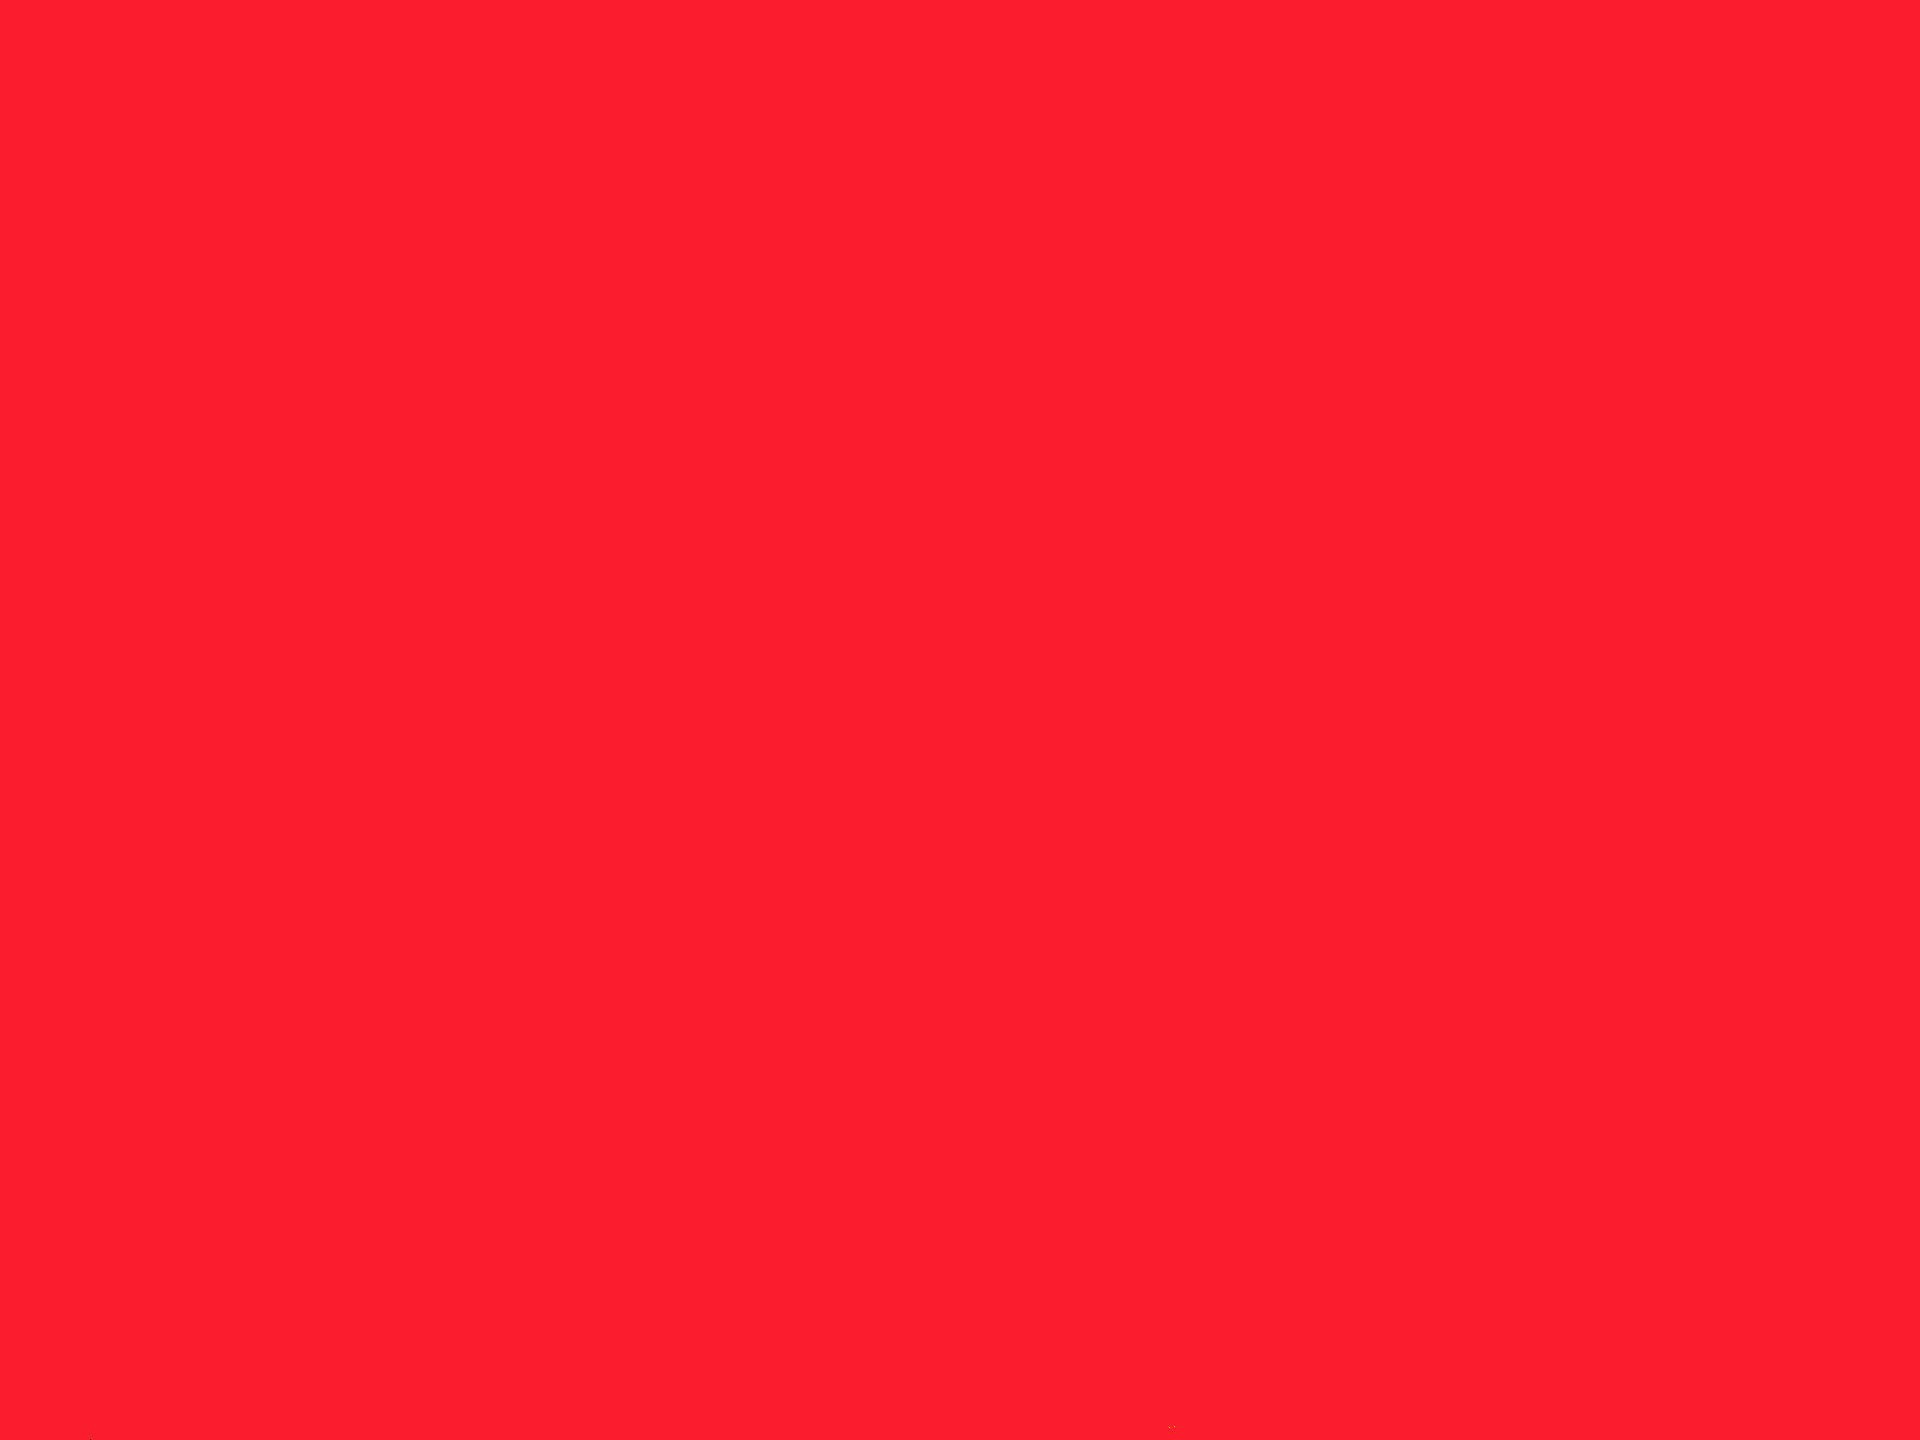 Free Download 3d Wallpaper For Android Tablet Light Red Background 183 ① Download Free Beautiful Hd